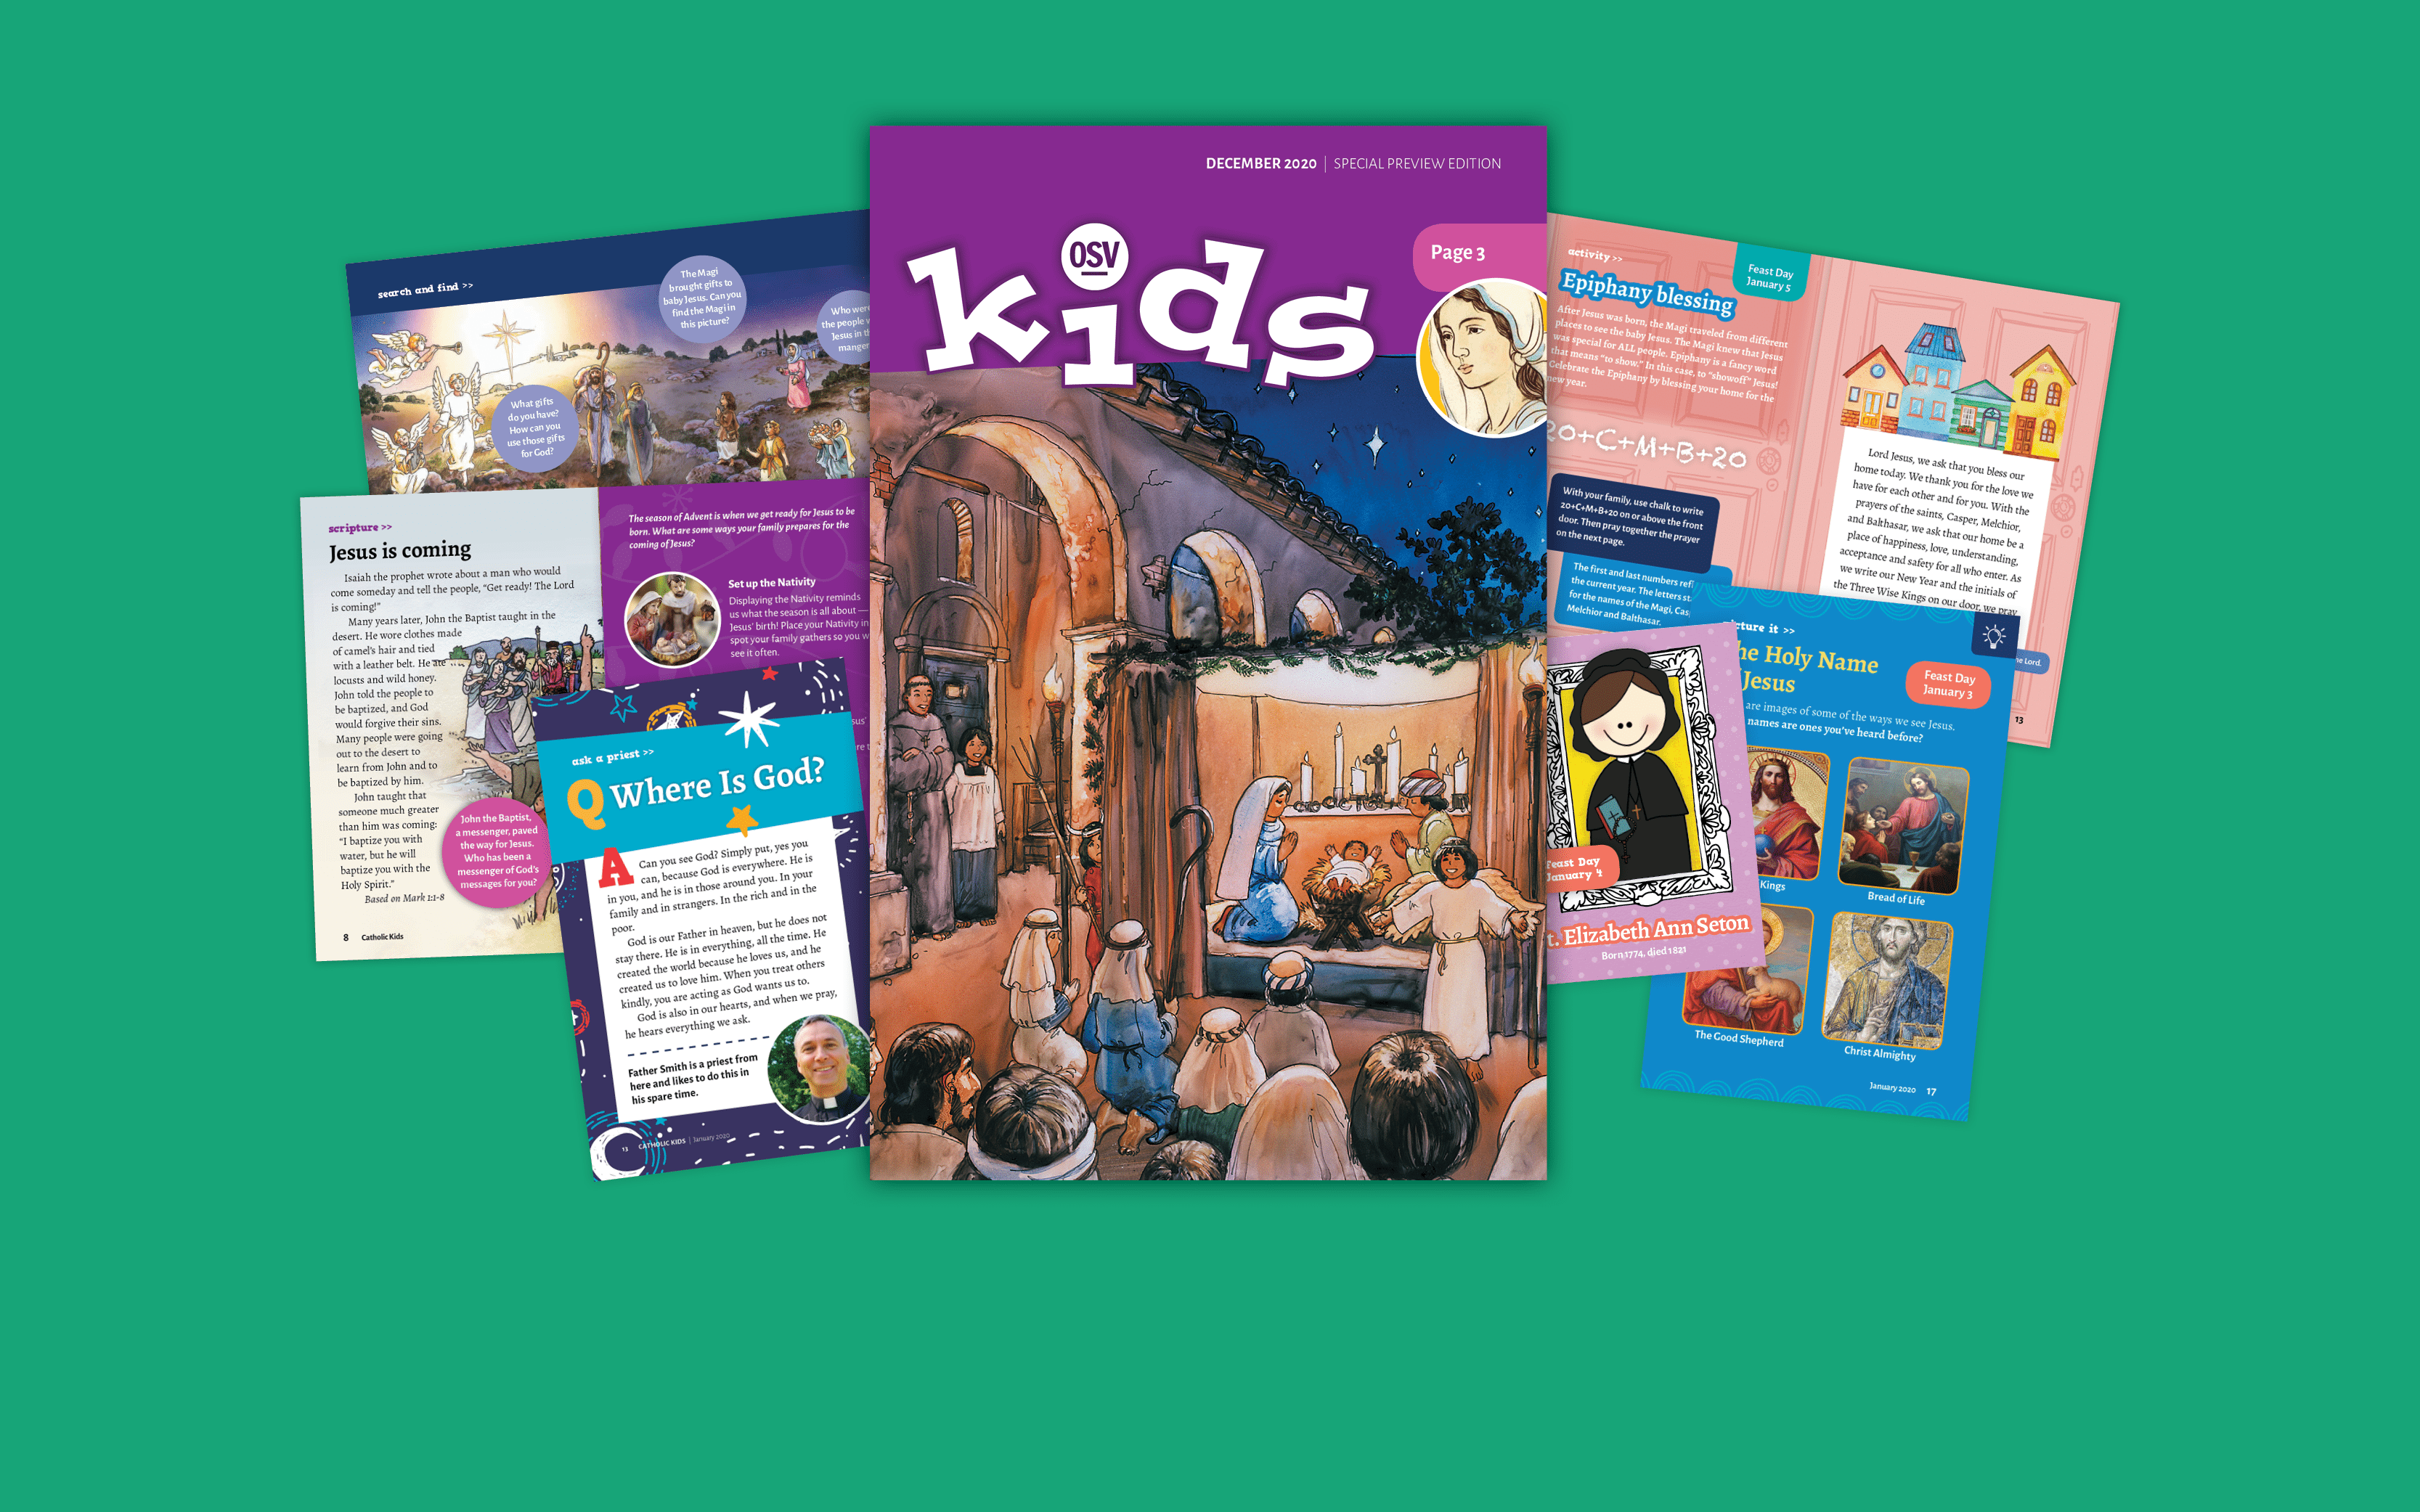 OSV Kids: A new magazine for kids ages 2-6